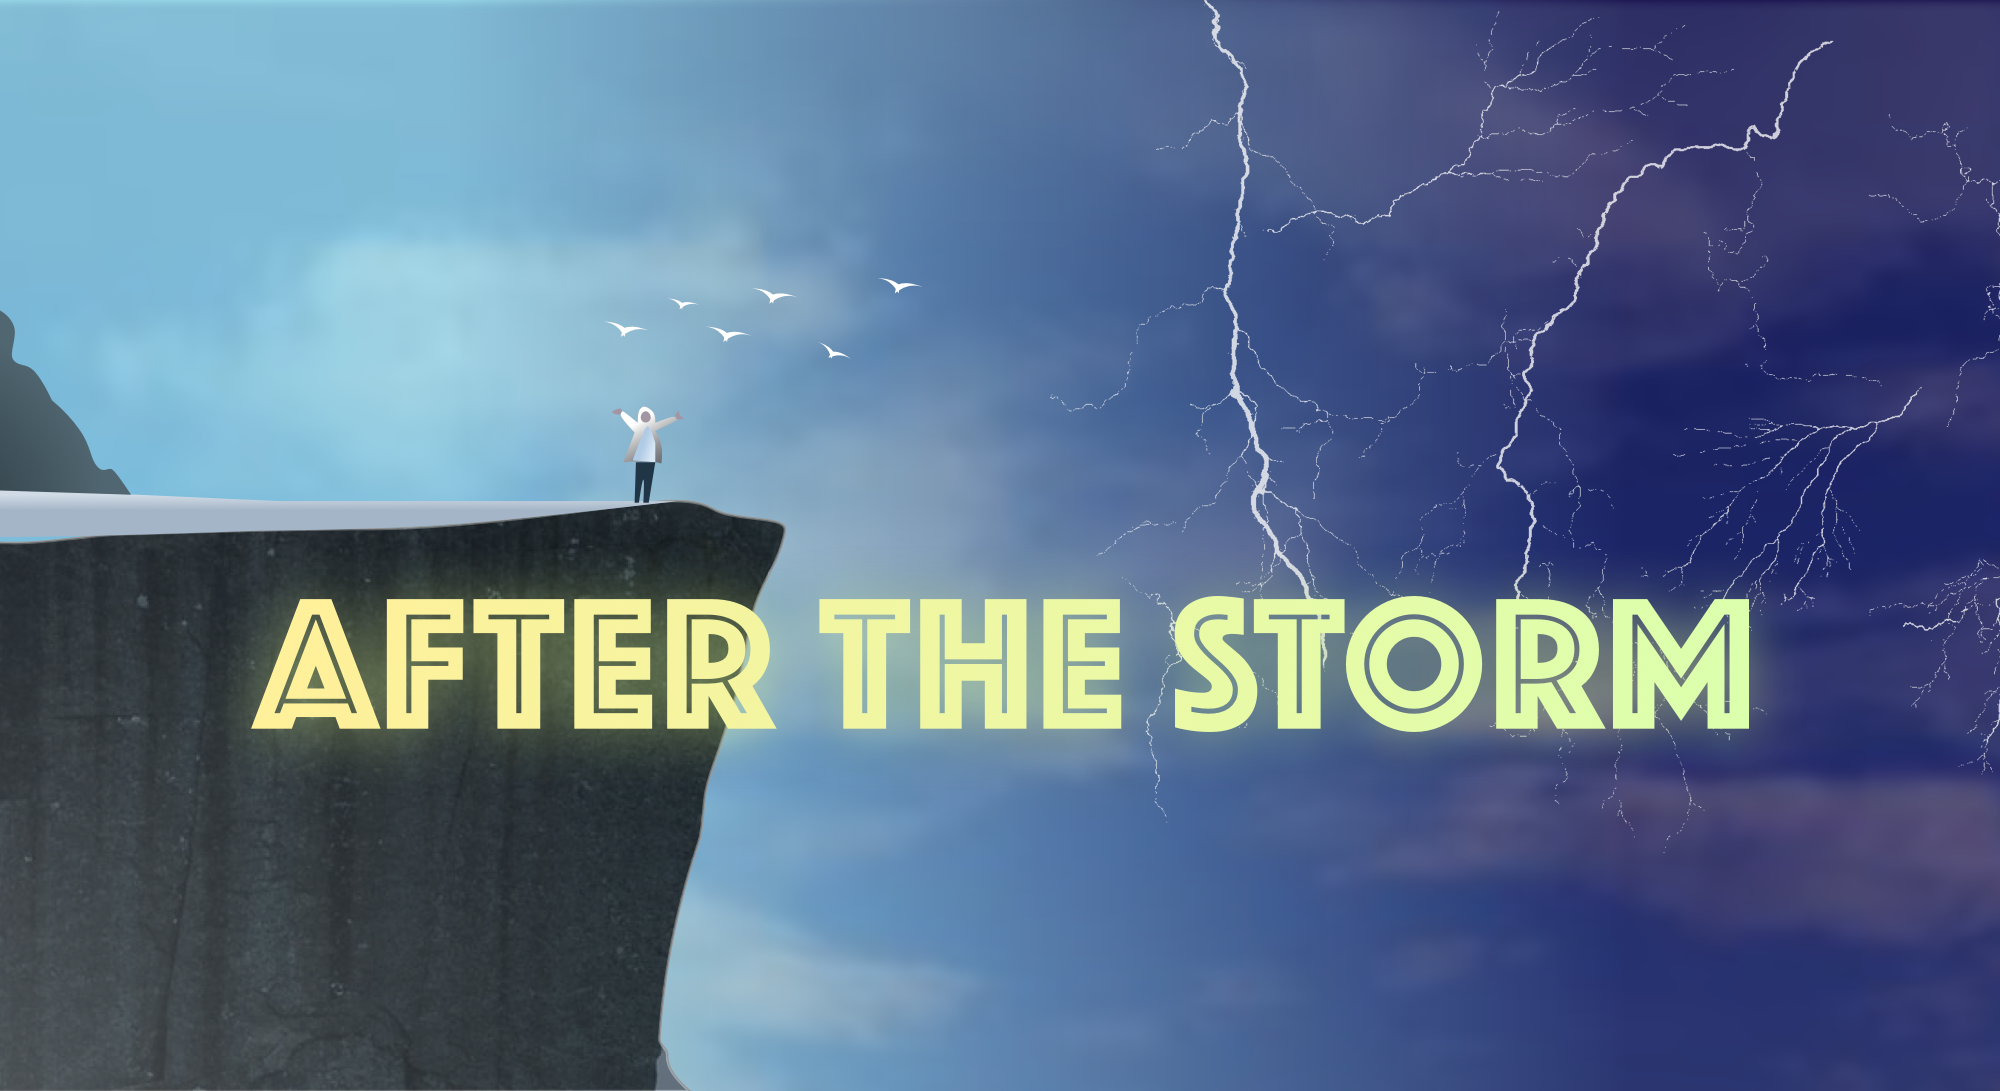 Person standing on a cliff. A storm is in the distance. The words 'After The Storm' are overlaid over the image.